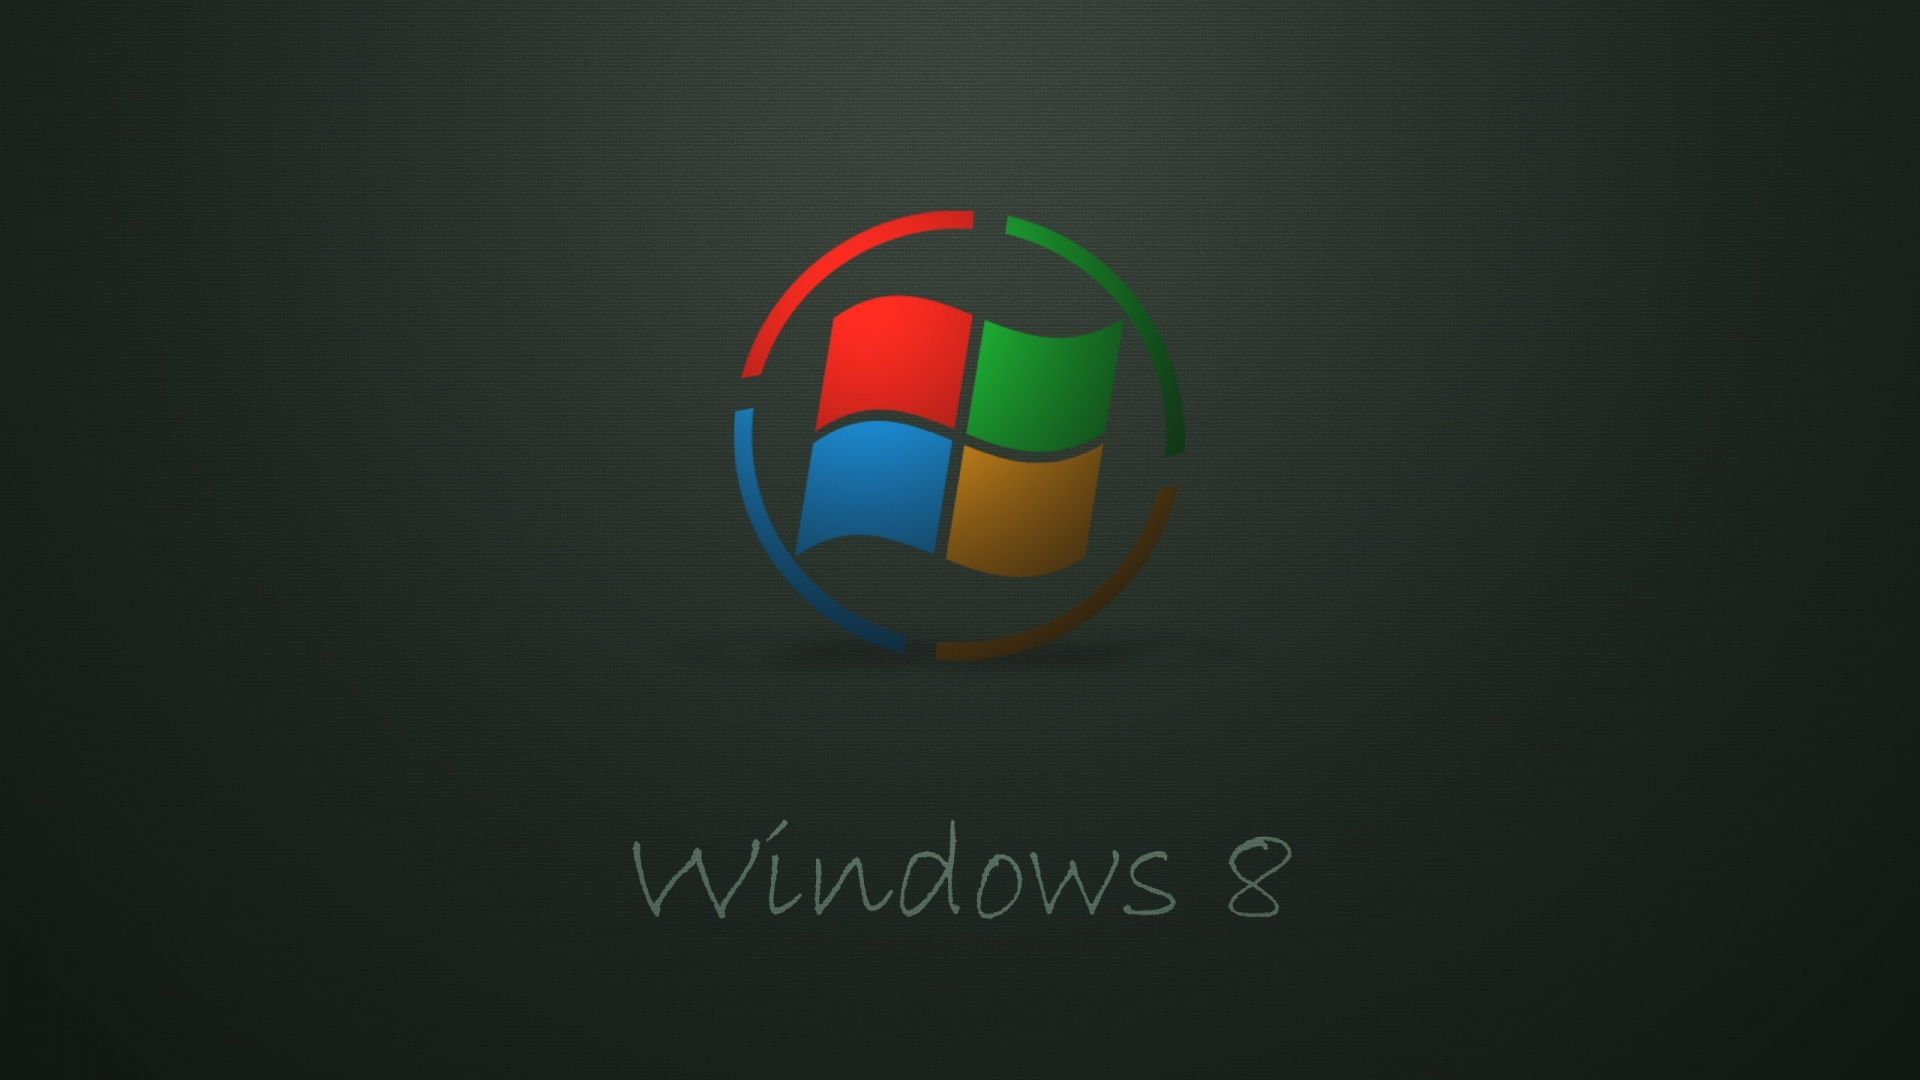 Windows 8 Full Hd Wallpaper And Background Image